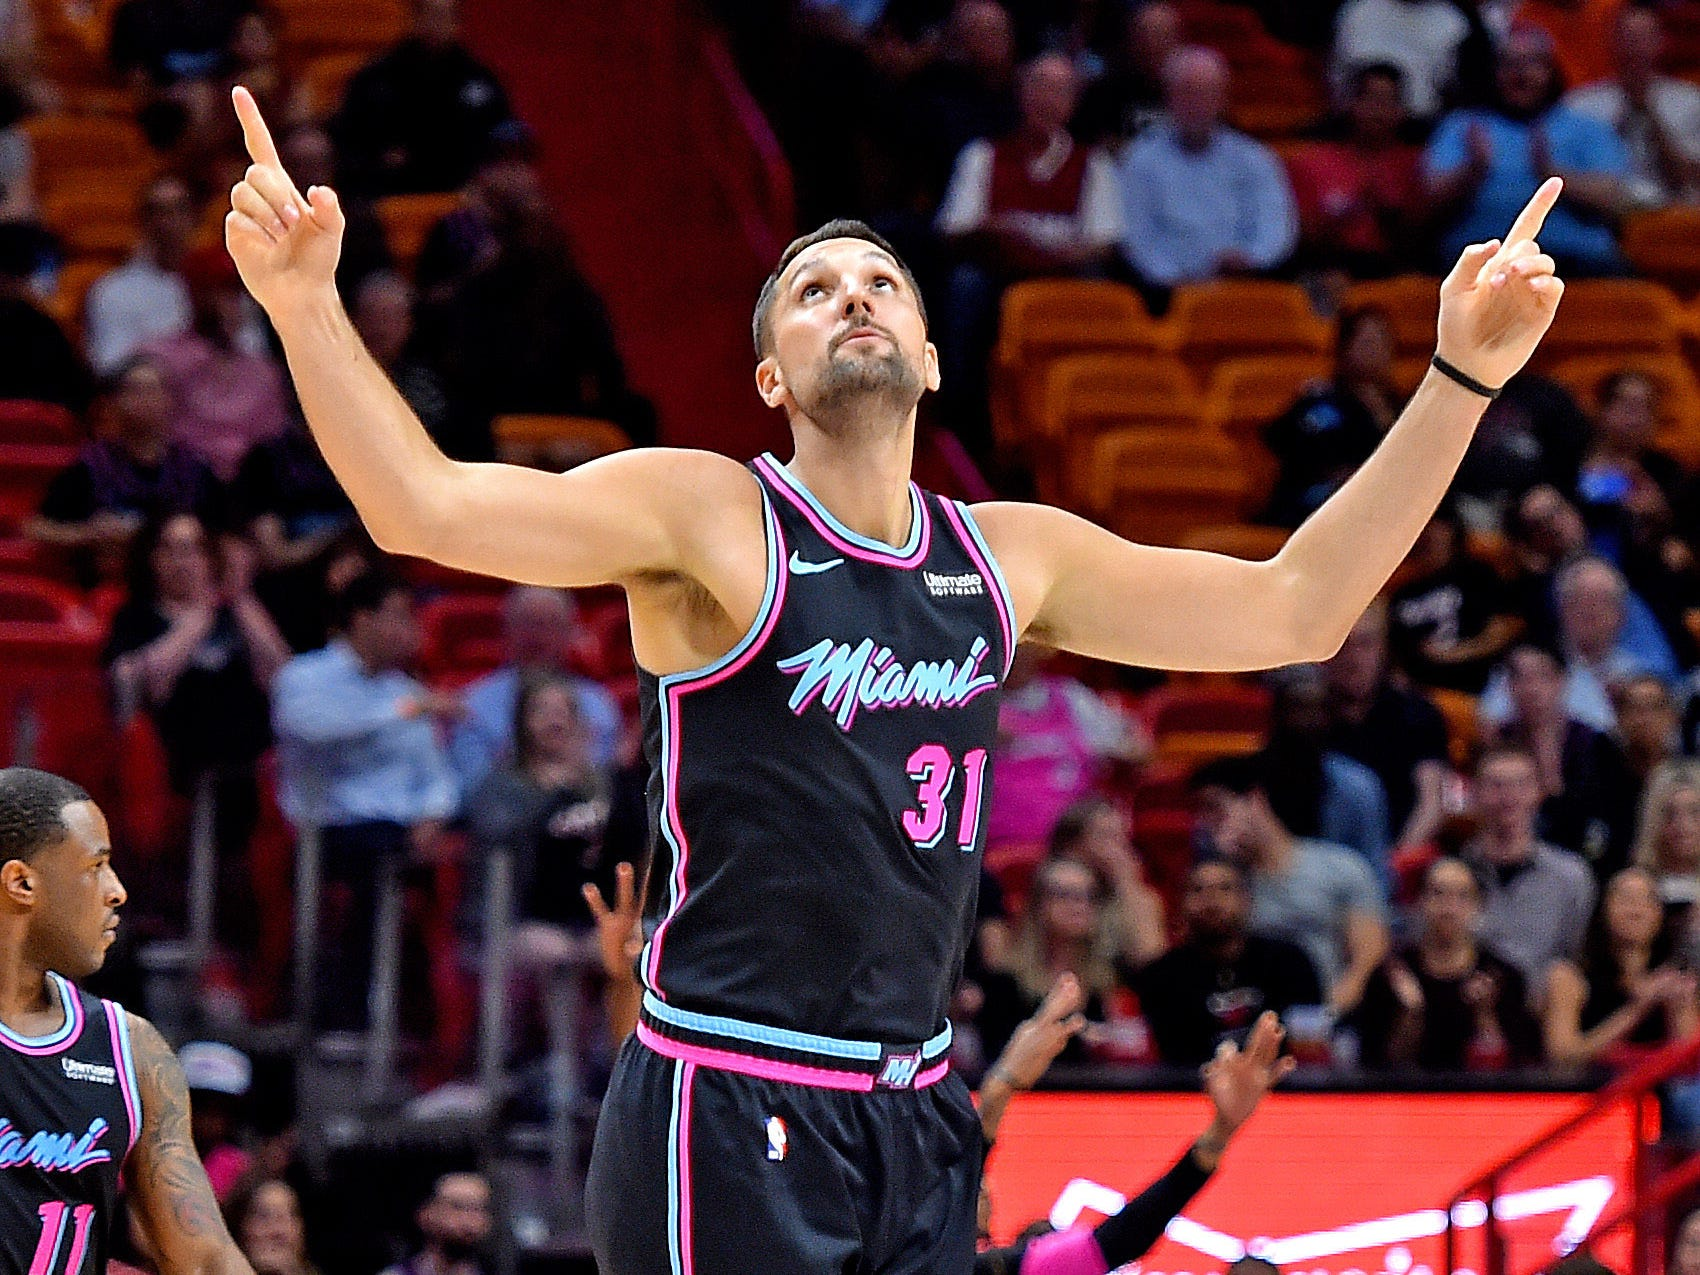 Feb 25, 2019; Miami, FL, USA; Miami Heat forward Ryan Anderson (31) reacts after making a three point basket against the Phoenix Suns during the first half at American Airlines Arena. Mandatory Credit: Steve Mitchell-USA TODAY Sports